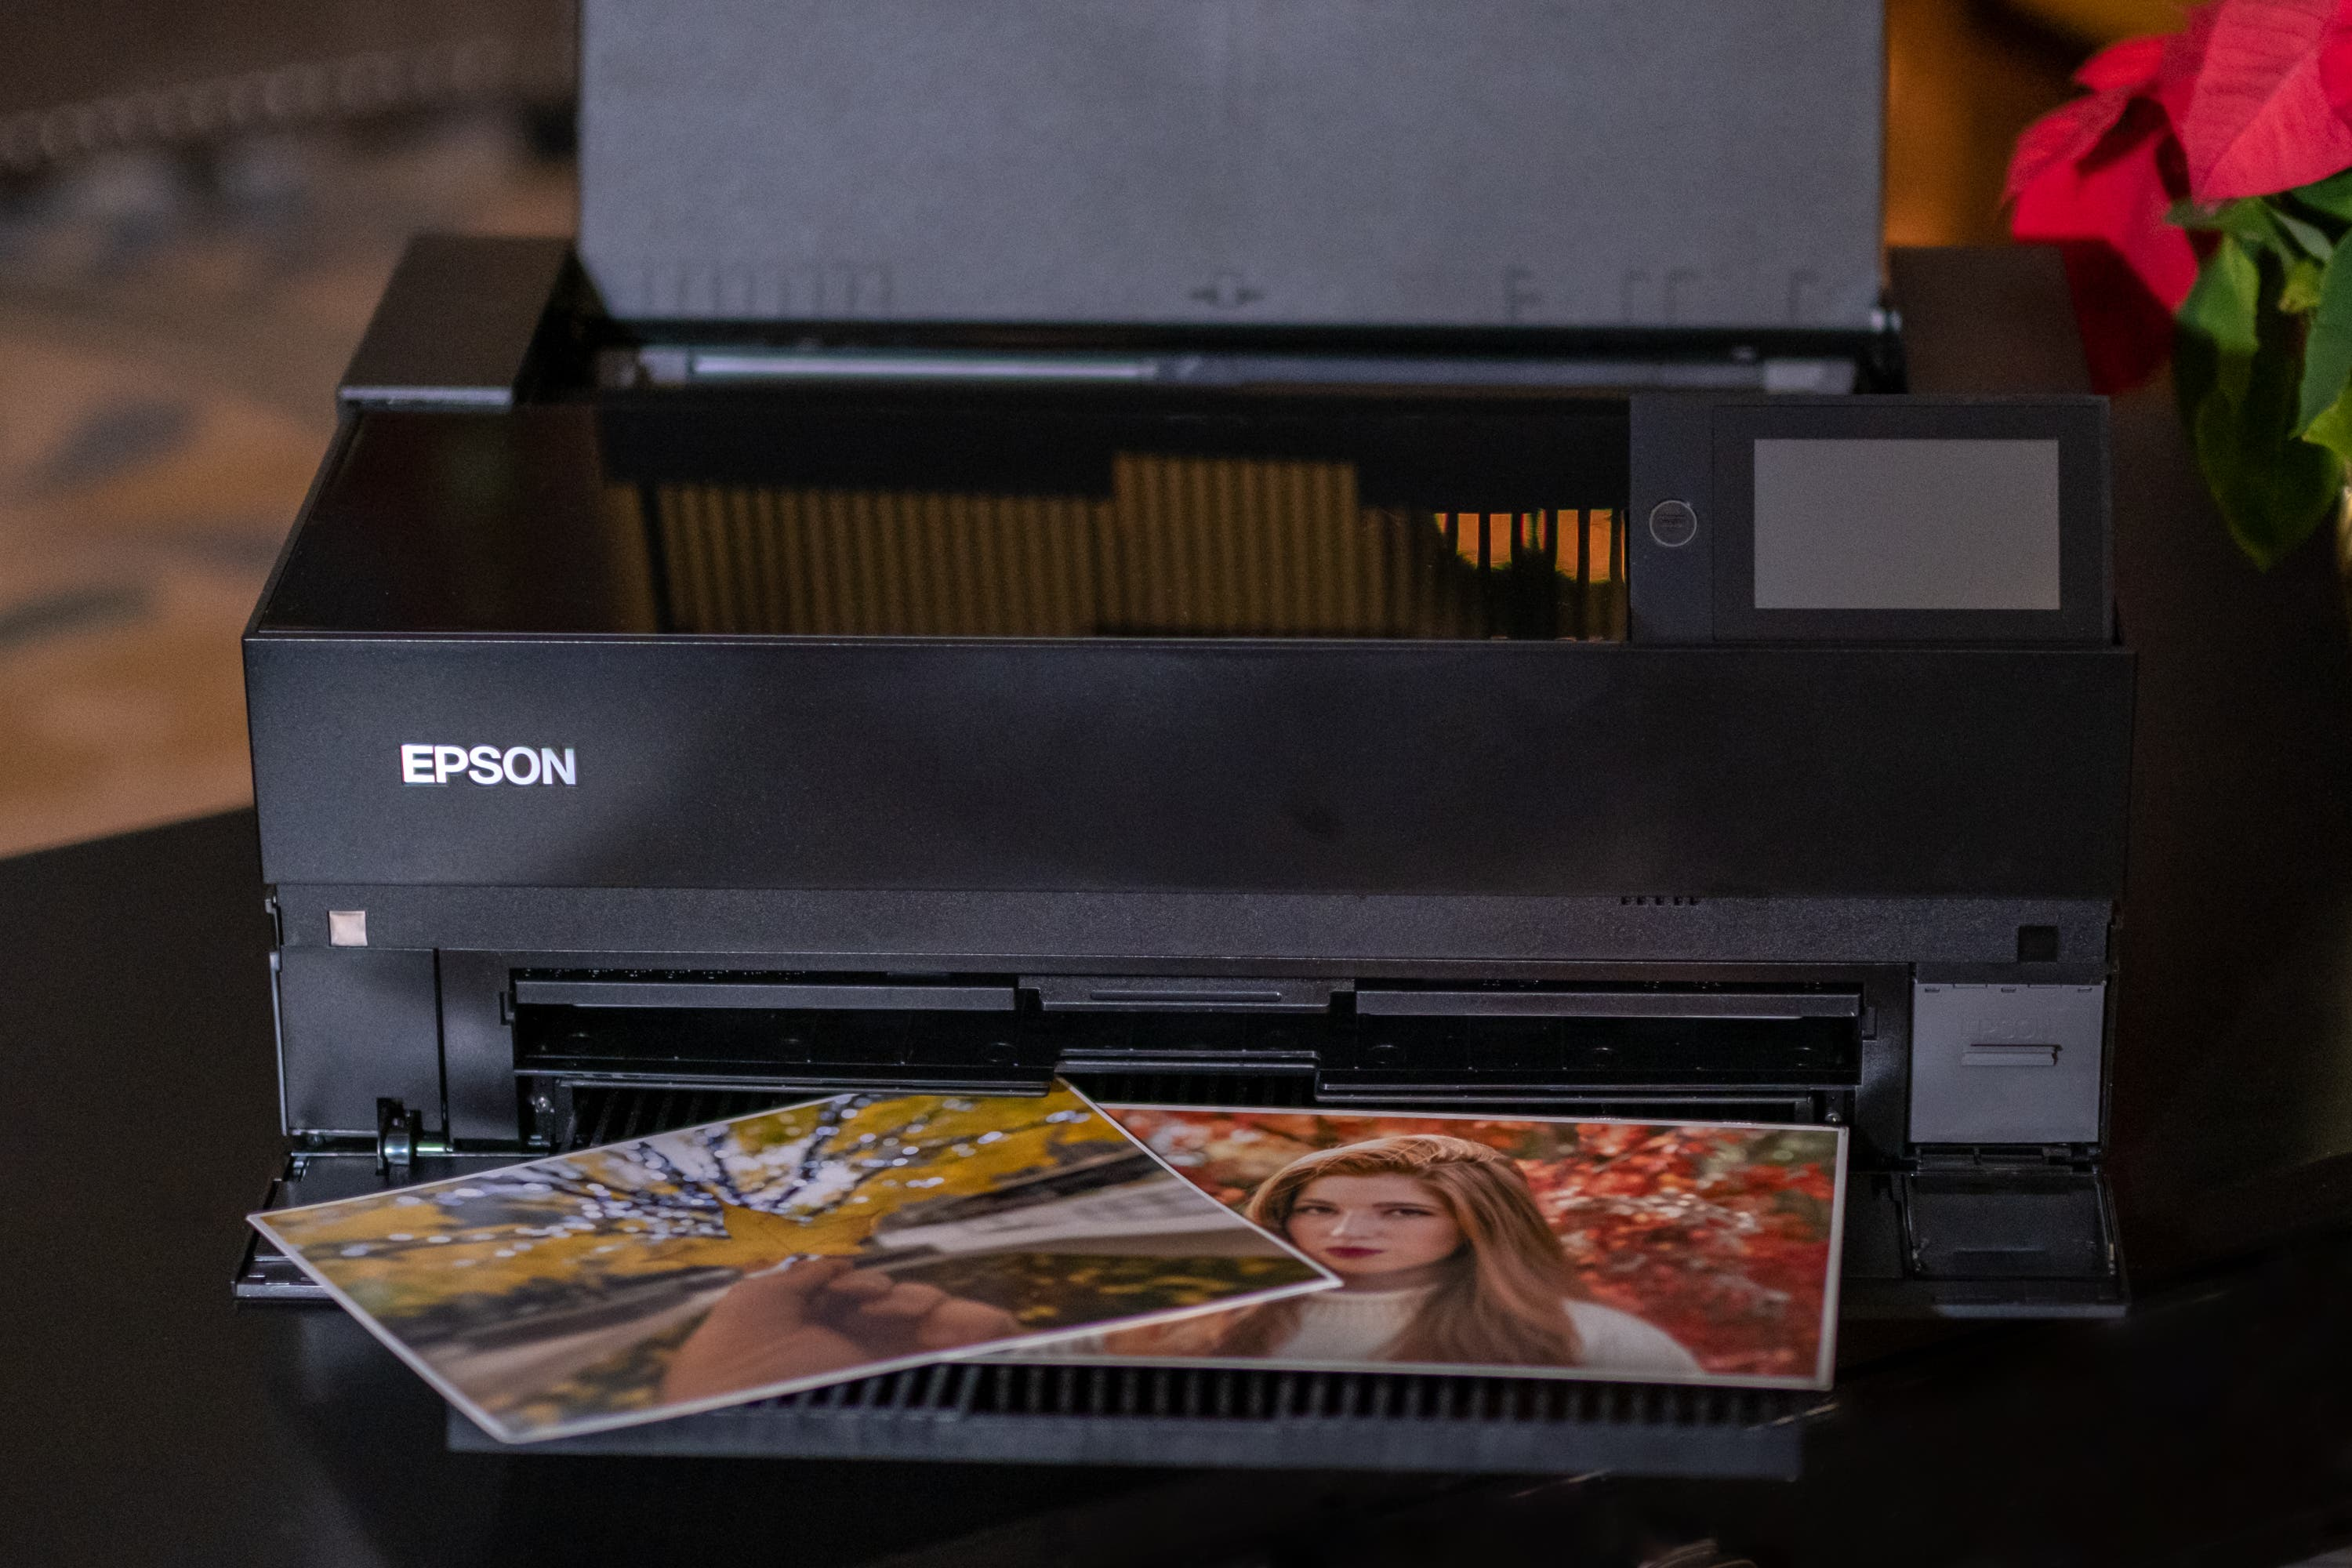 Big, Beautiful Prints That Will Amaze: Epson SureColor P900 Review